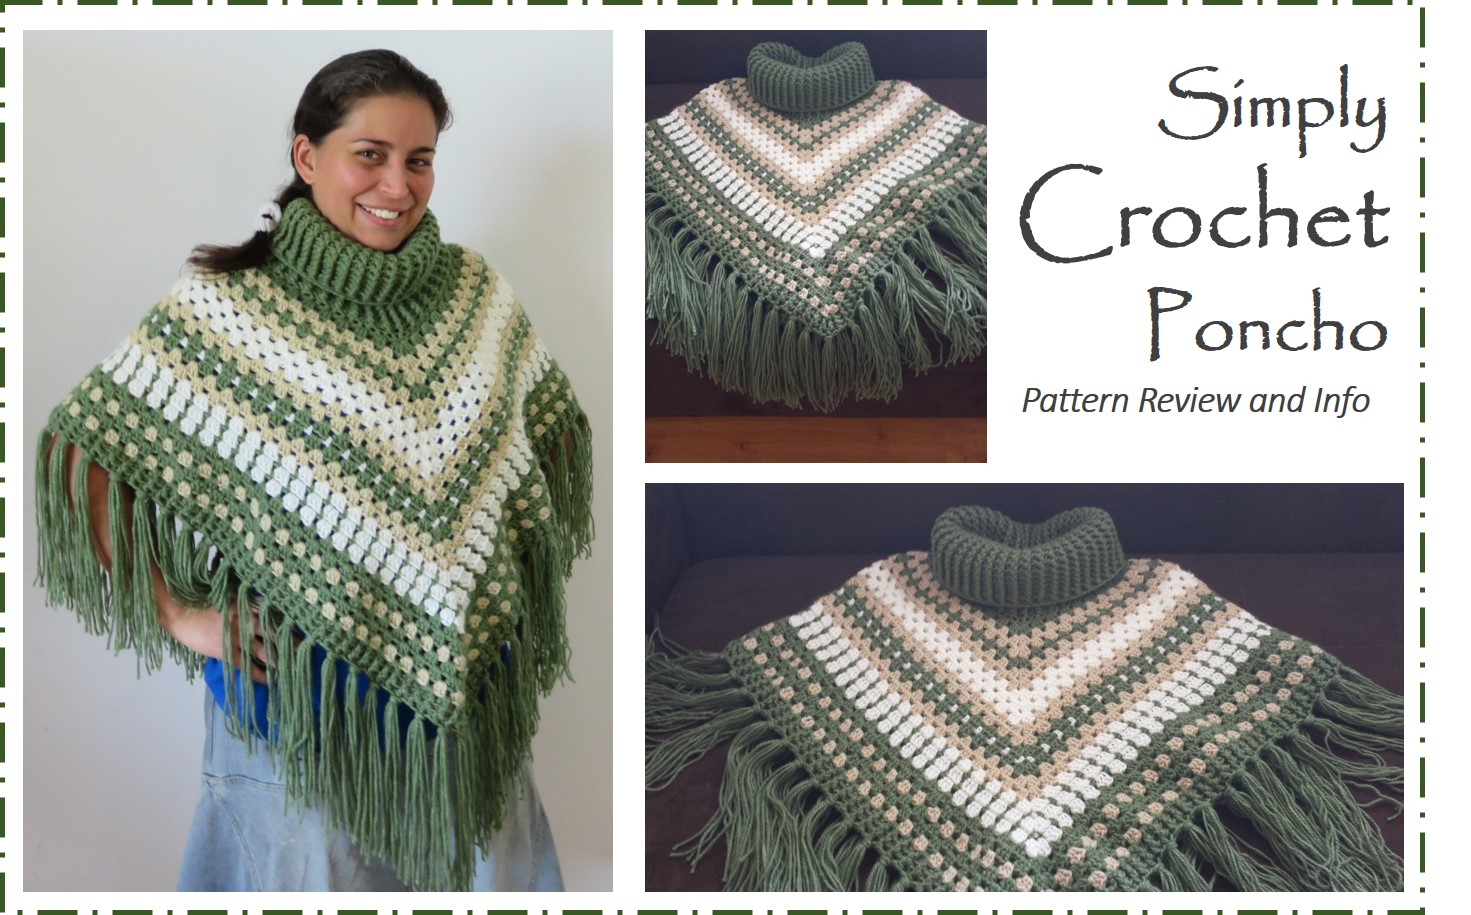 Jungling the odds simply crochet cowl neck poncho pattern review simply crochet cowl neck poncho pattern review and info bankloansurffo Choice Image